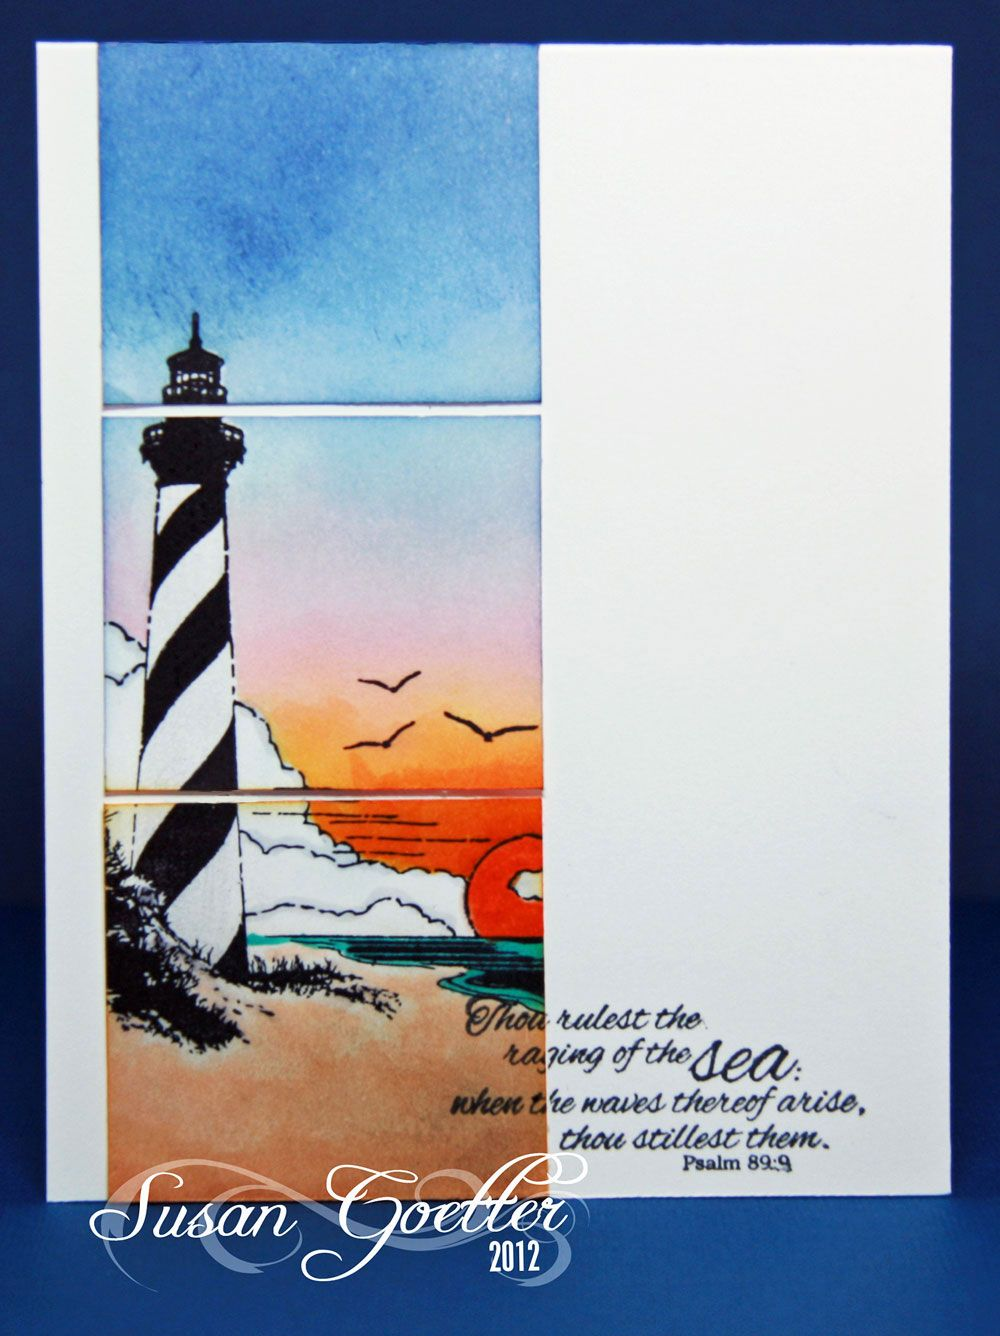 Lovely handmade card with a lighthouse scene gorgeous colors lovely handmade card with a lighthouse scene like the side panel with the scene cut up into three sections kristyandbryce Choice Image